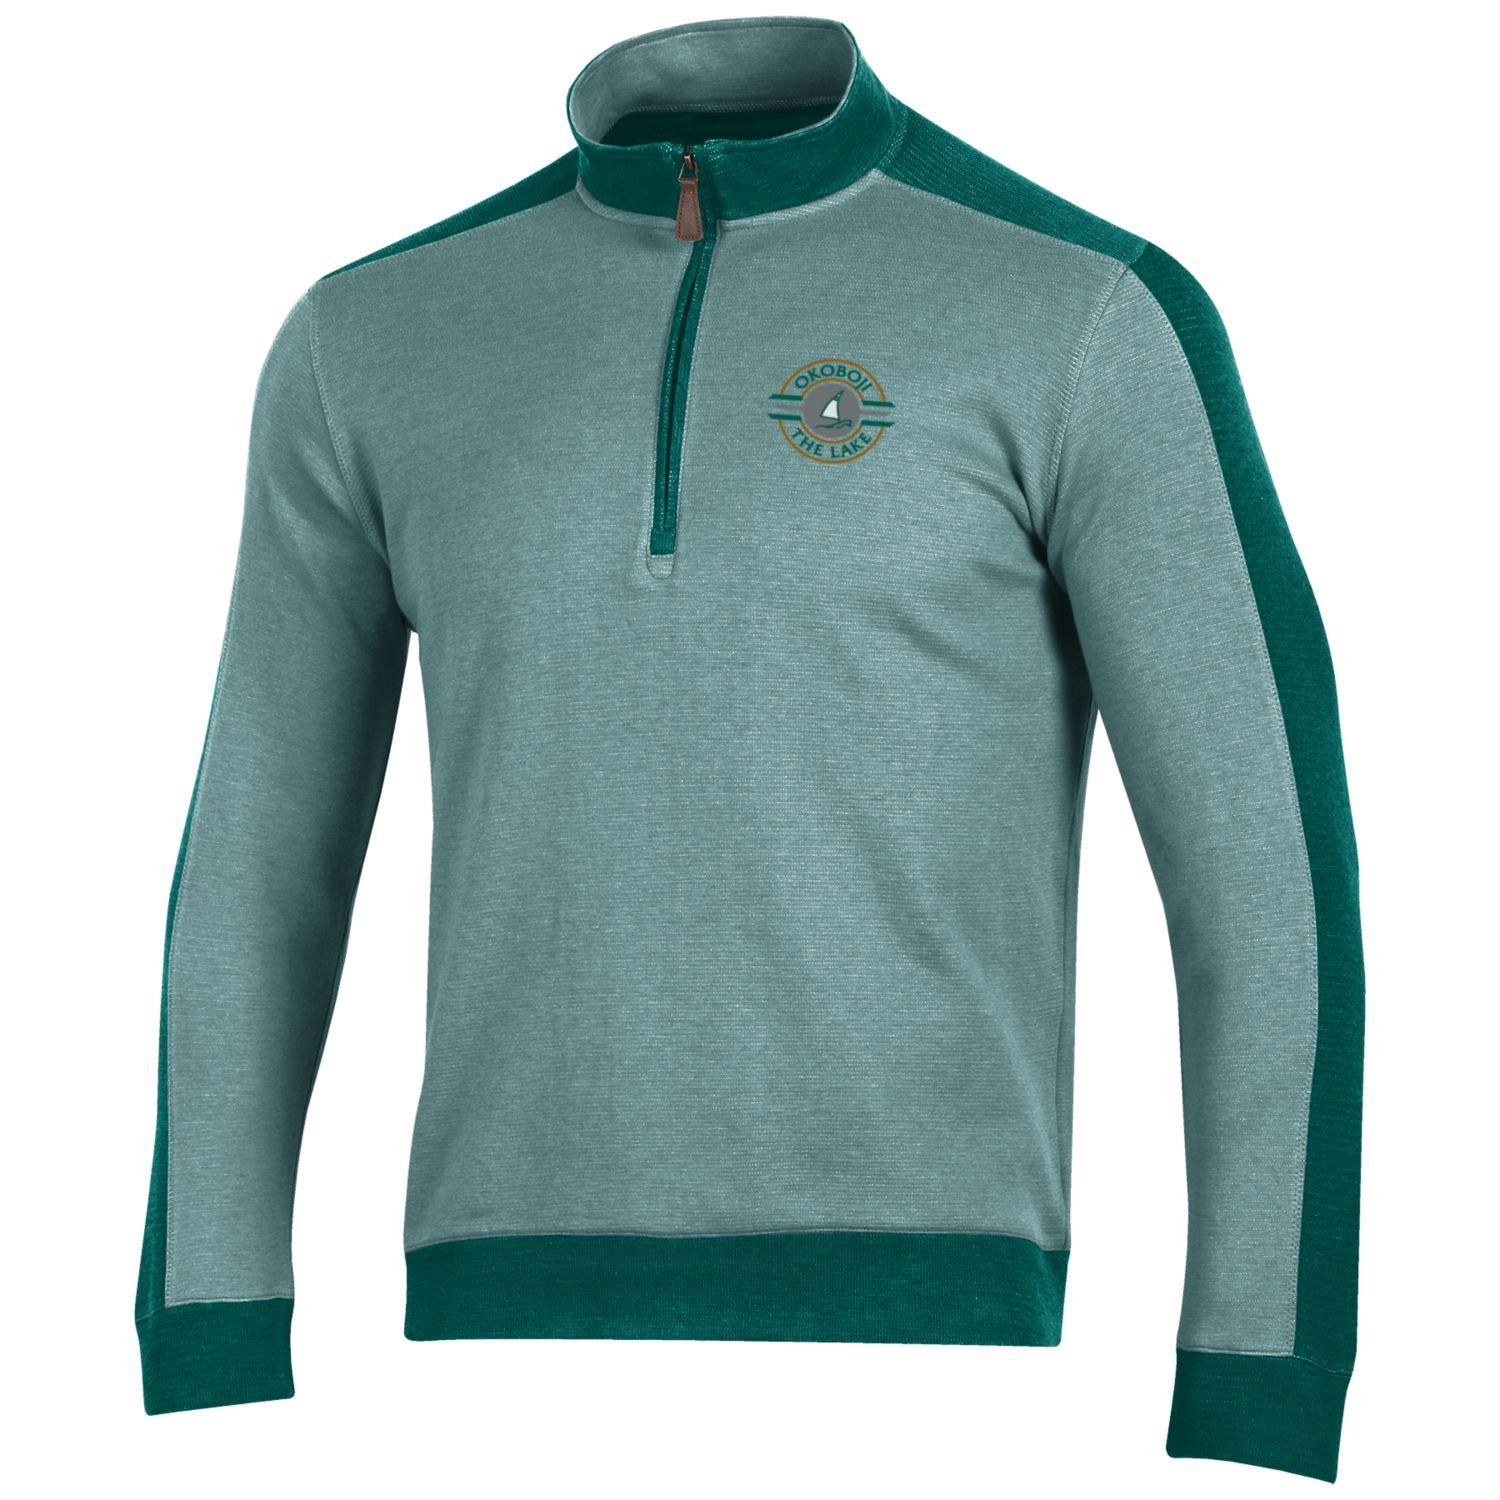 Okoboji Commander 1/4 Zip - Lakeside/Gallery Green